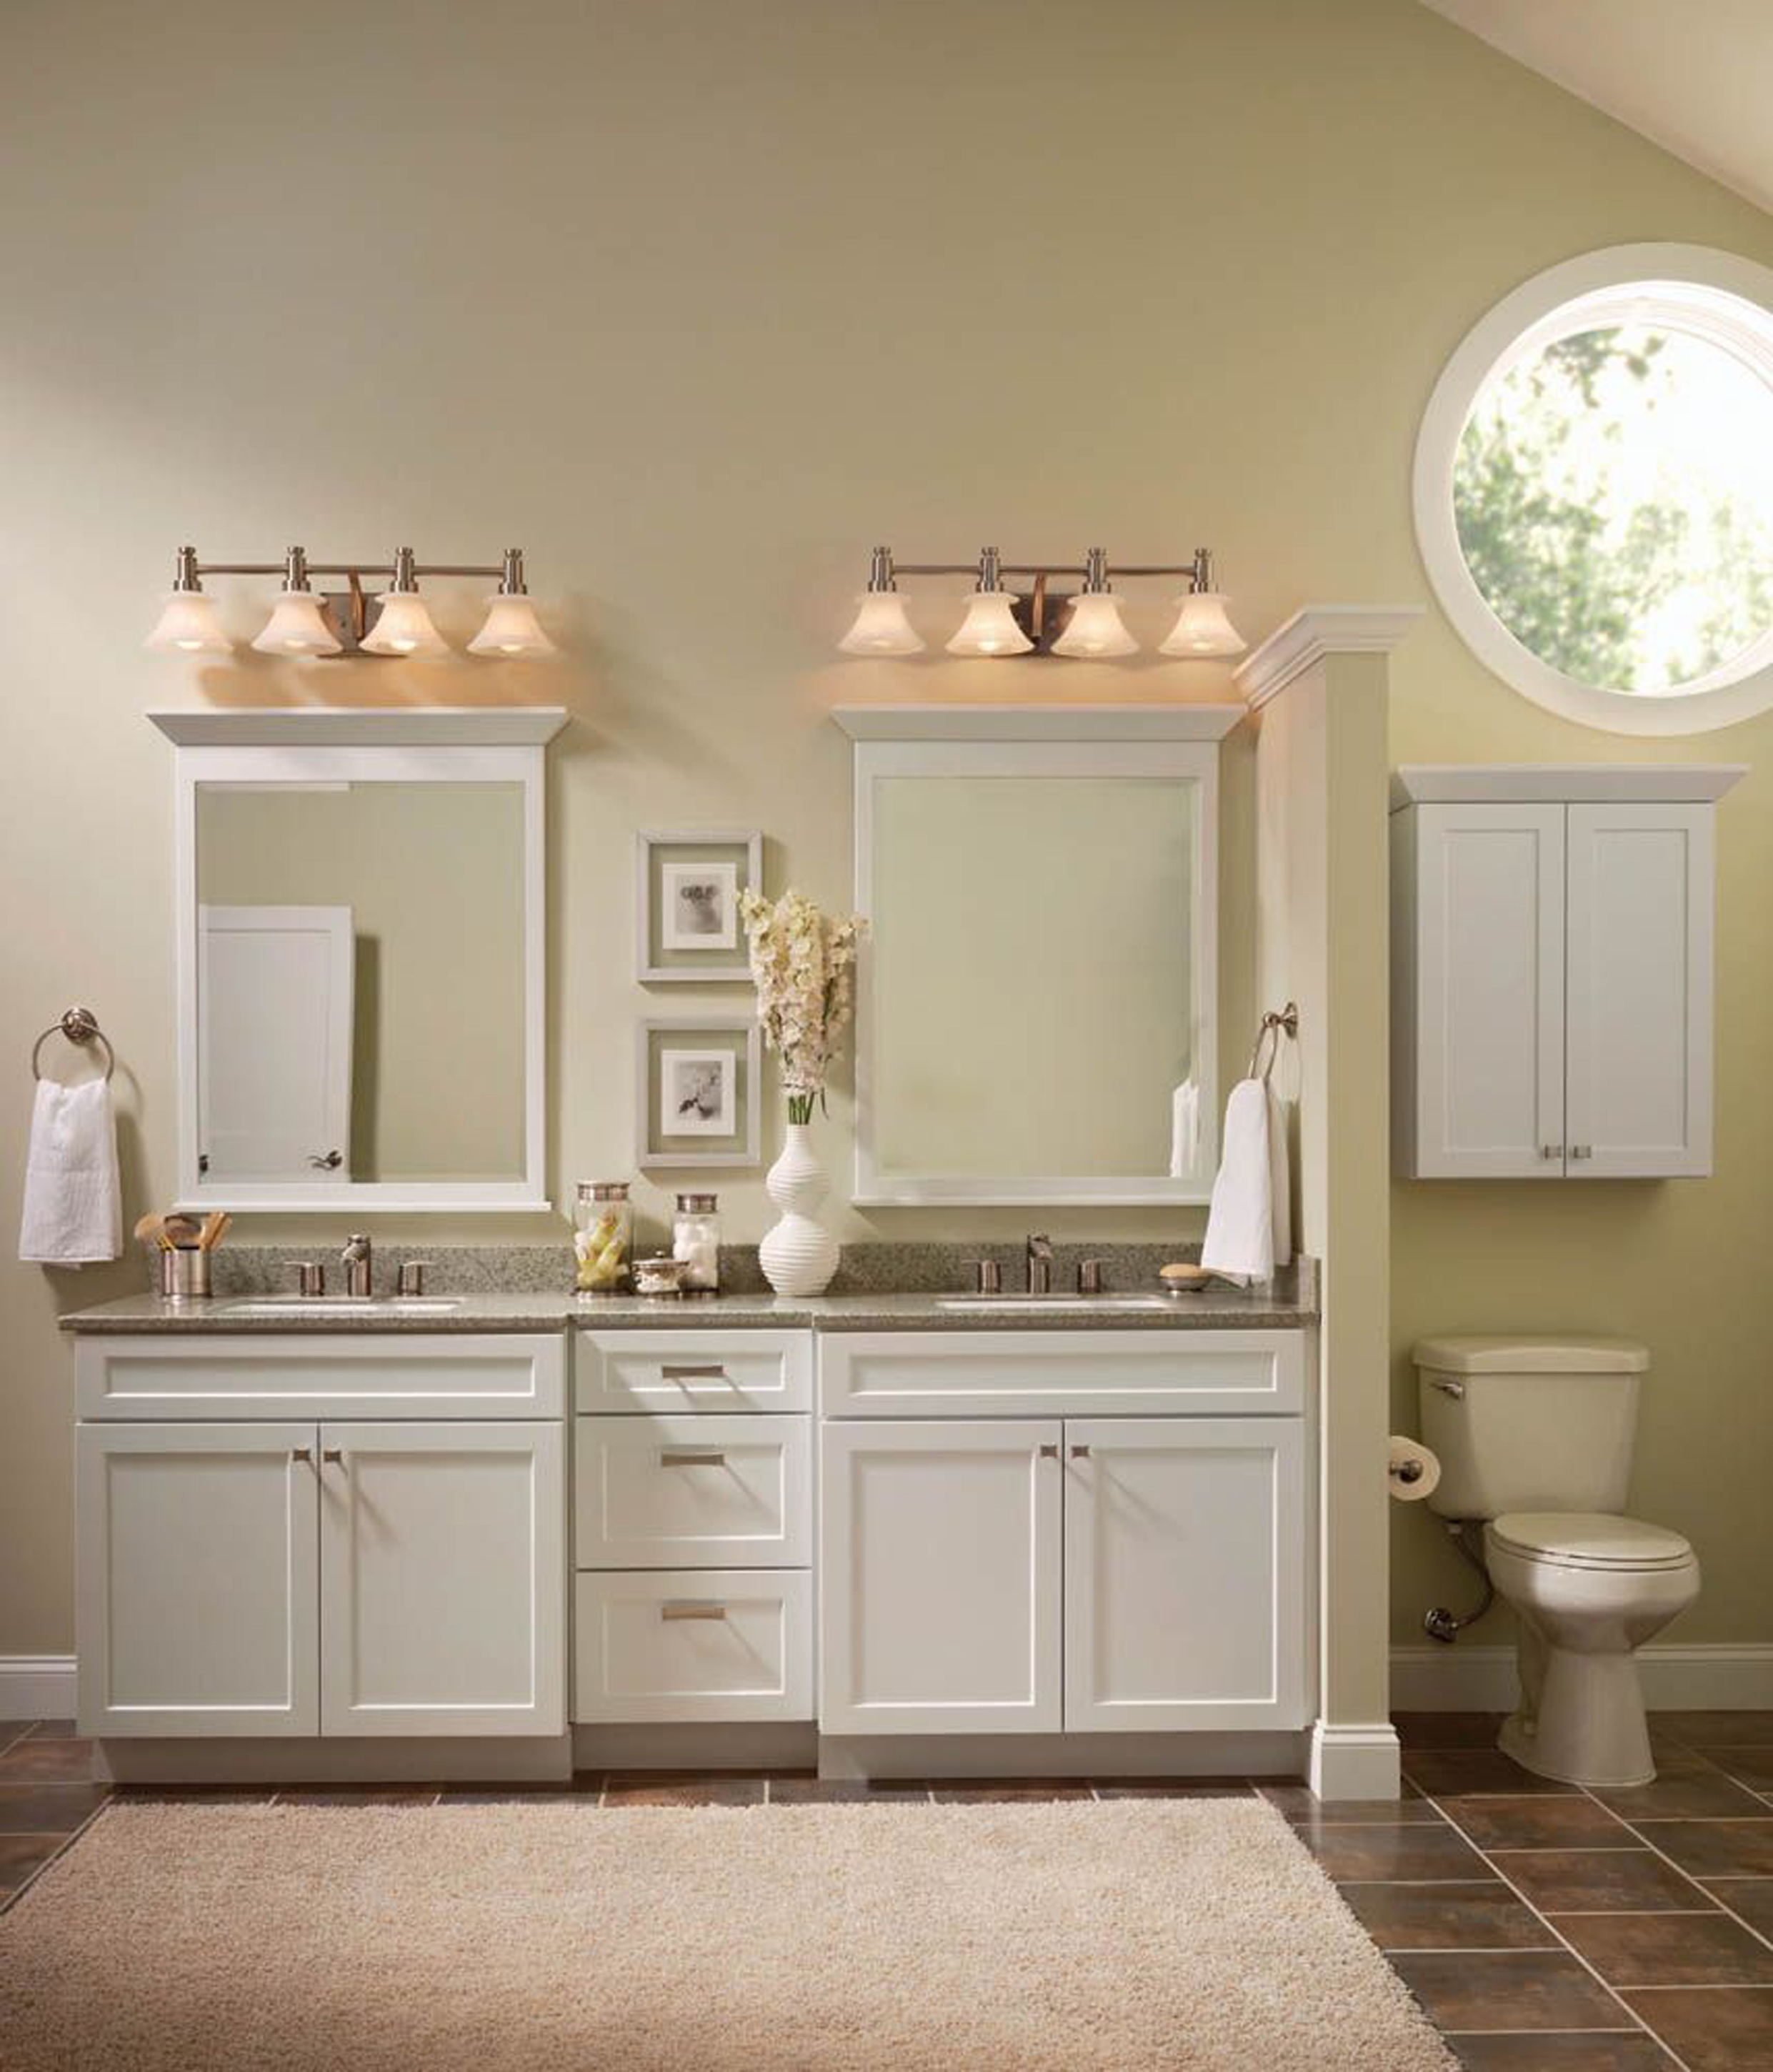 Popular White Design Bathroom Idea With White Vanities White Mirror Frames And White Wall Lamps Remarkable White Design Bathroom Ideas (View 18 of 23)